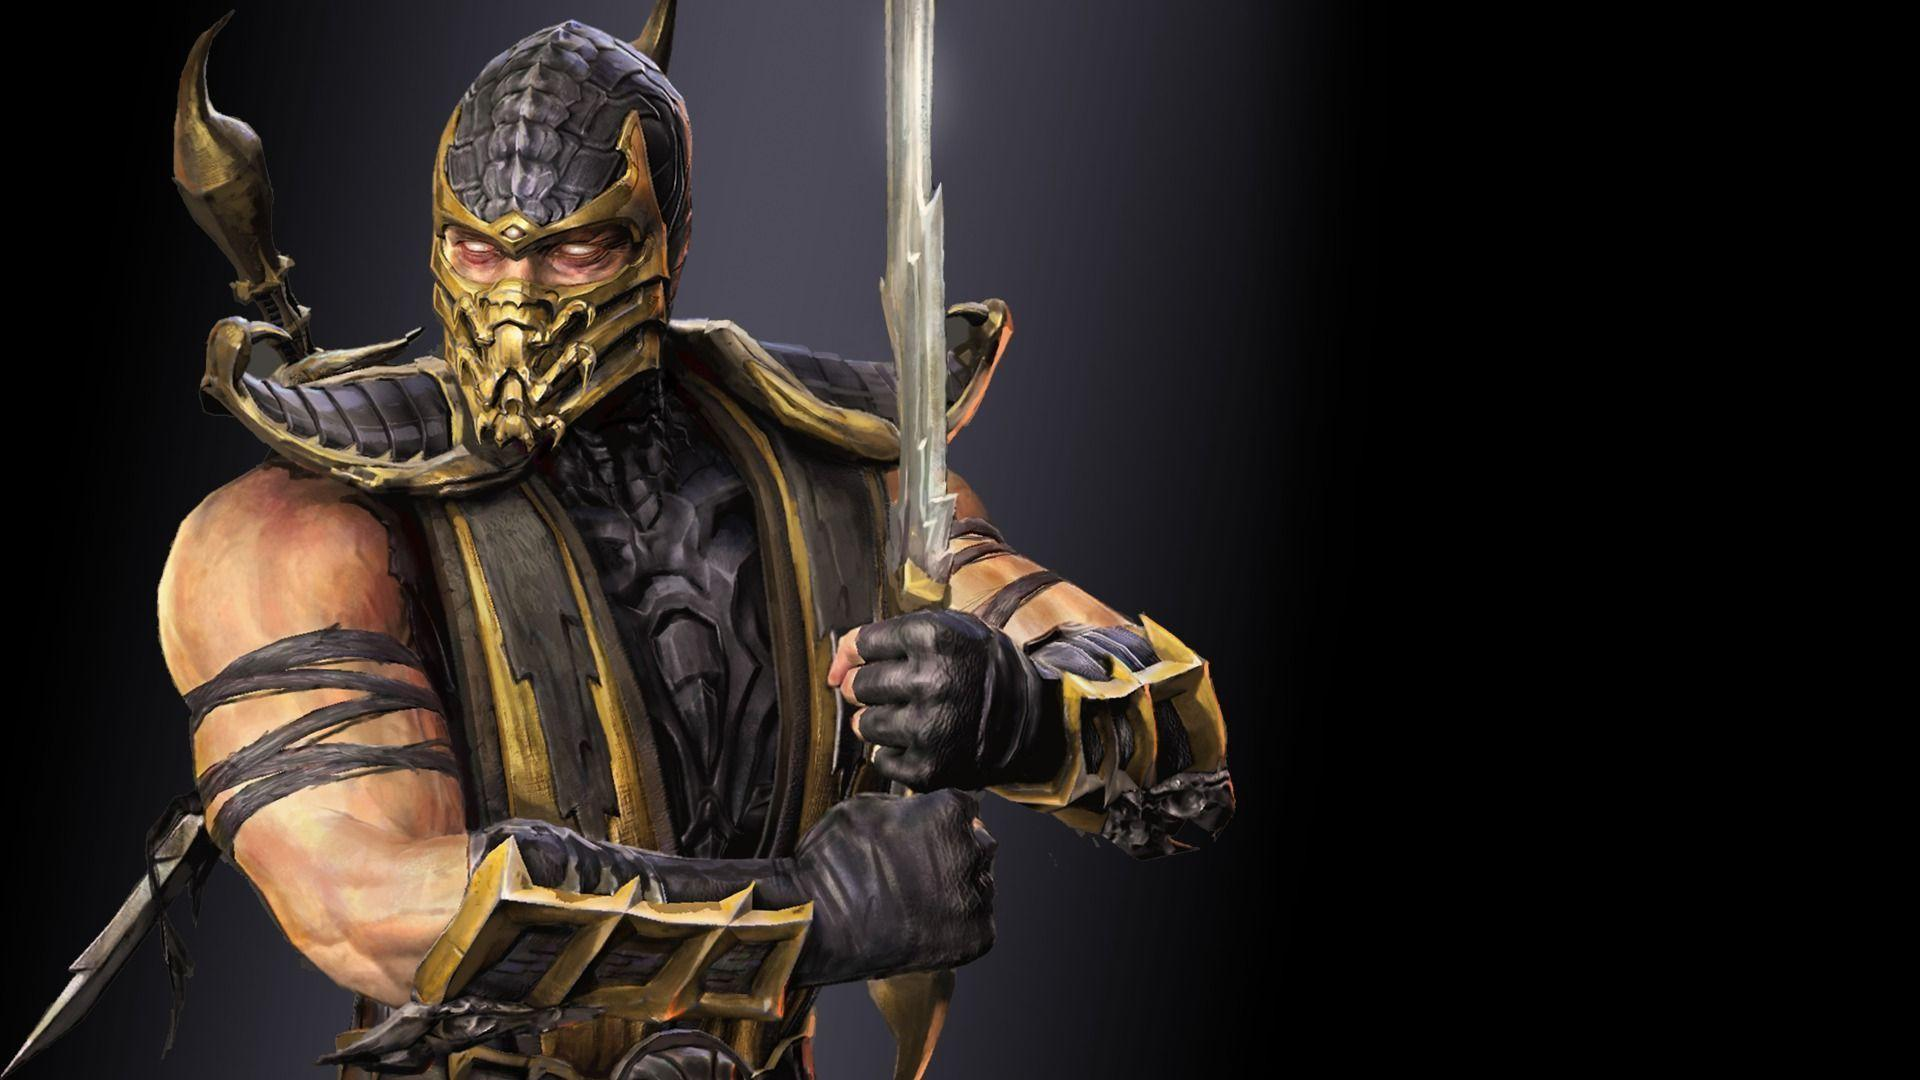 Mortal Kombat X Scorpion Wallpapers